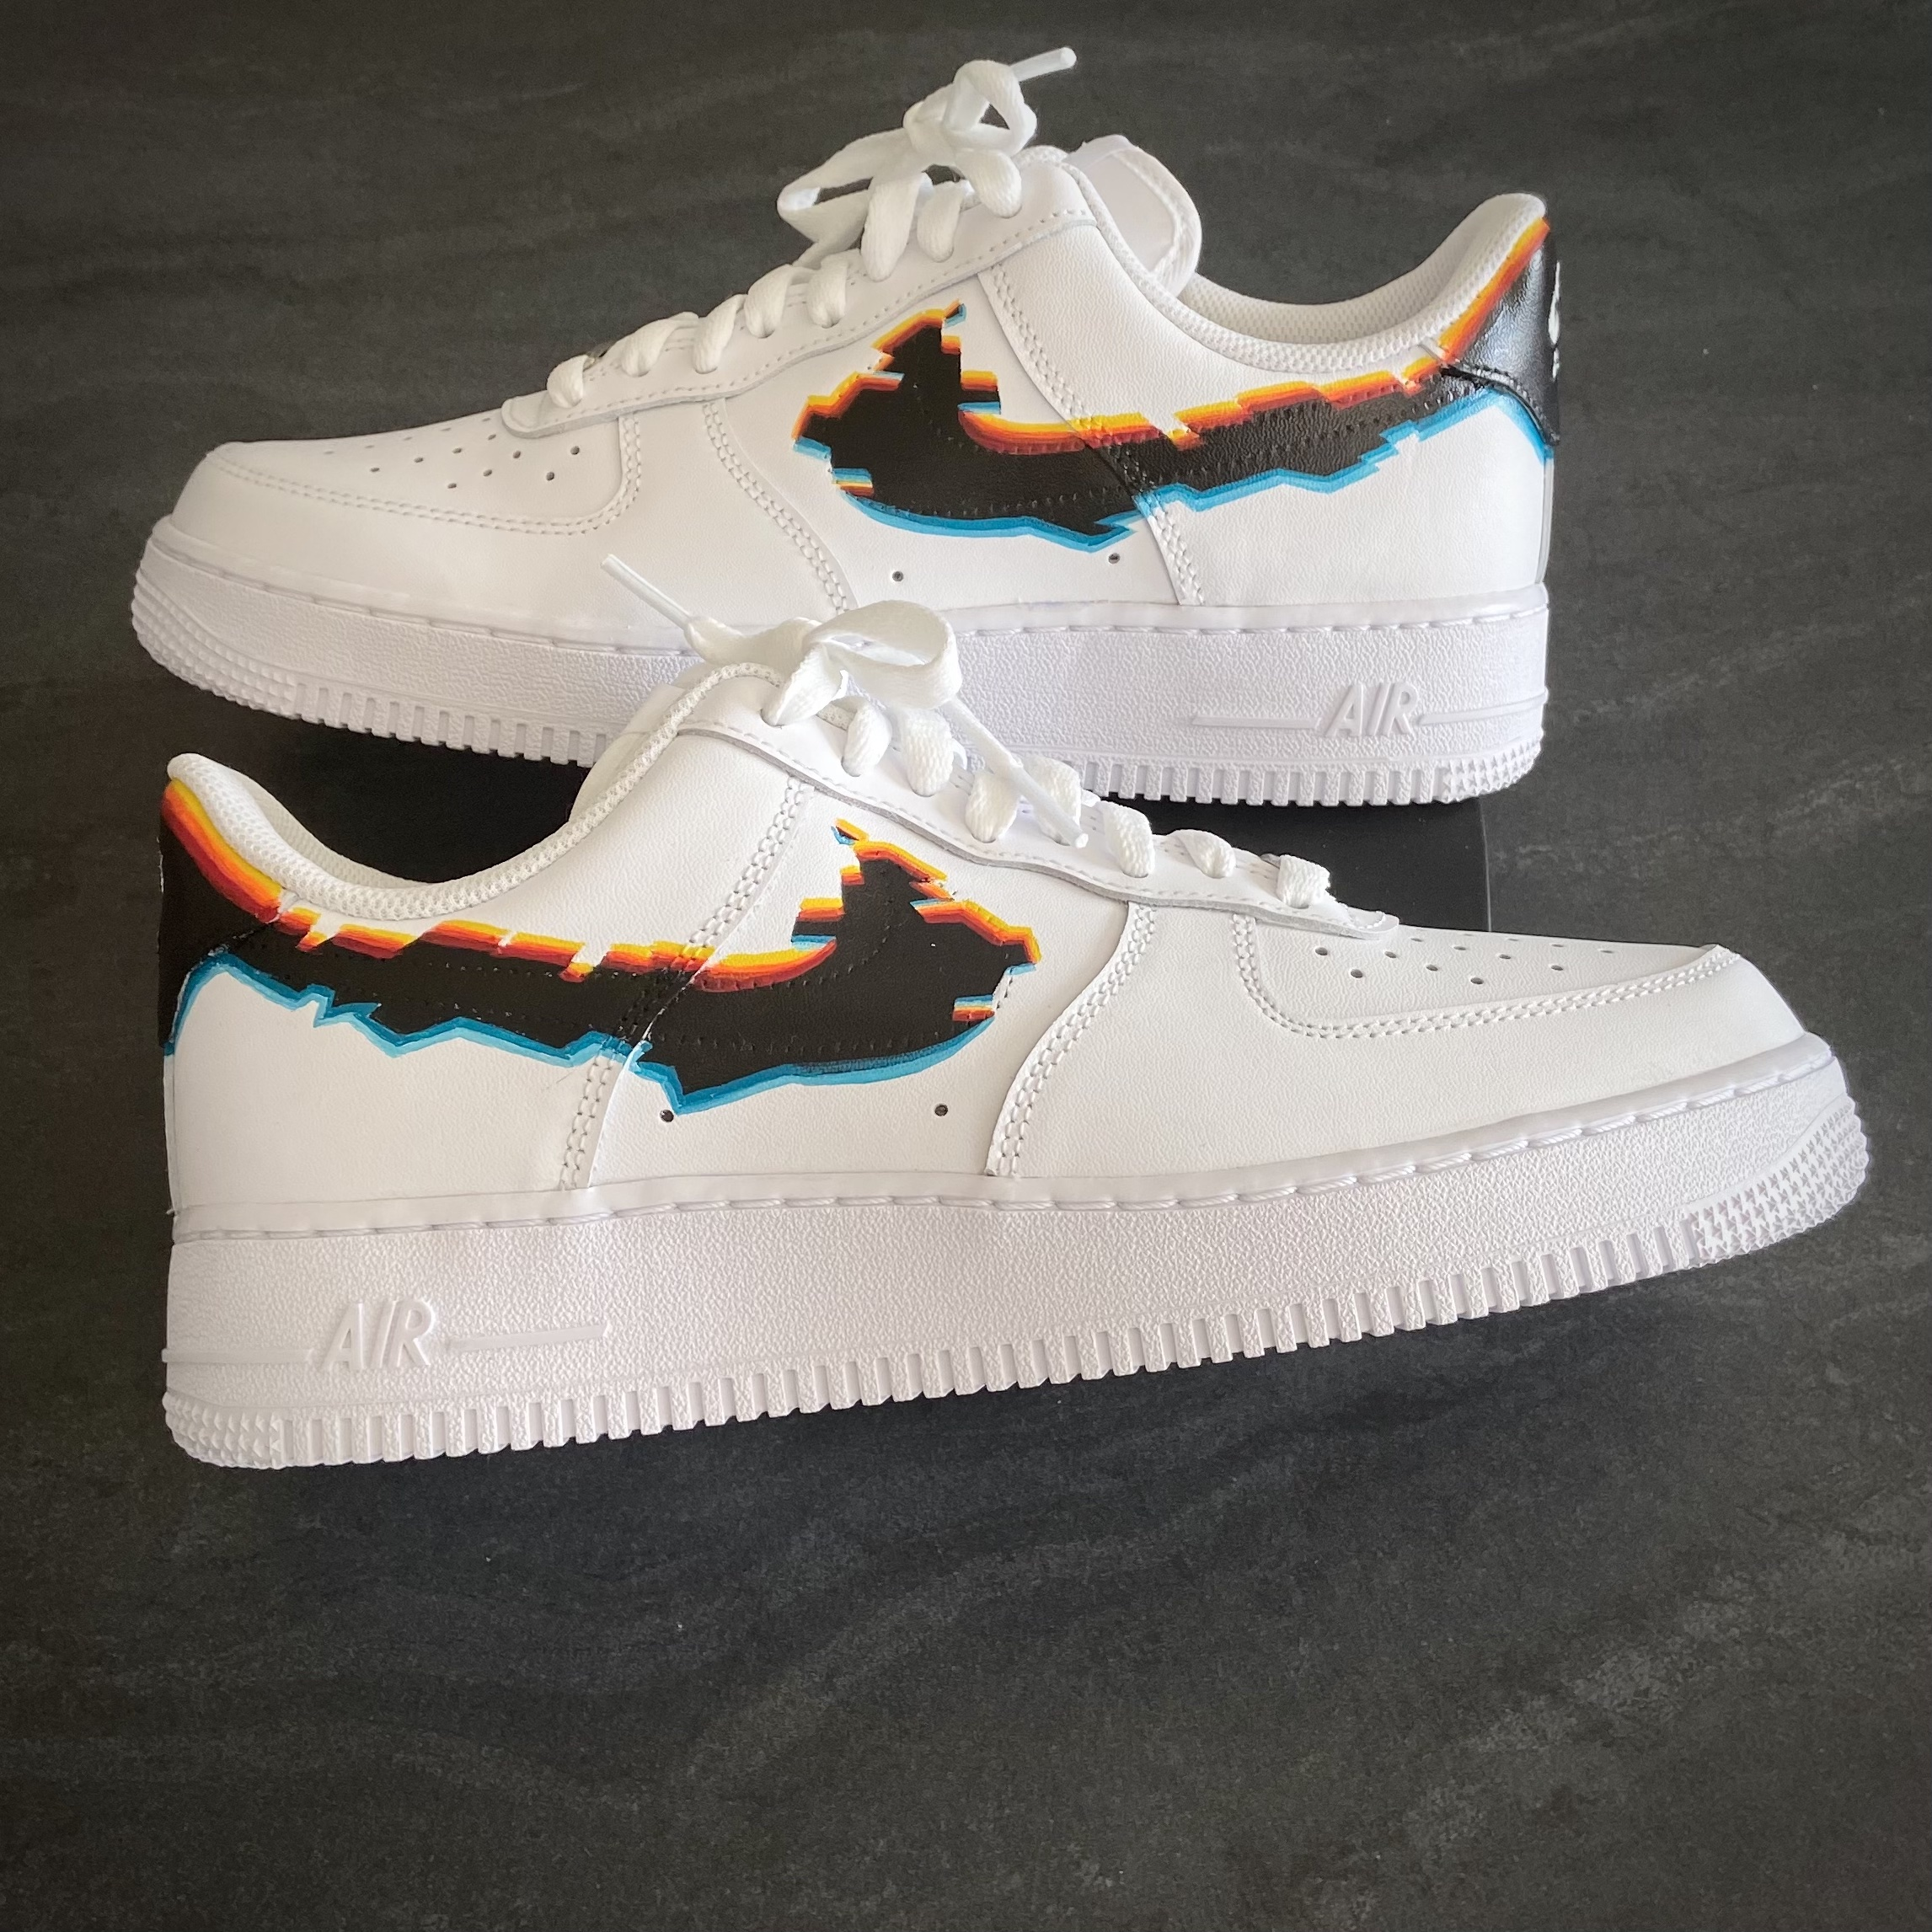 Nike painted leather Glitch